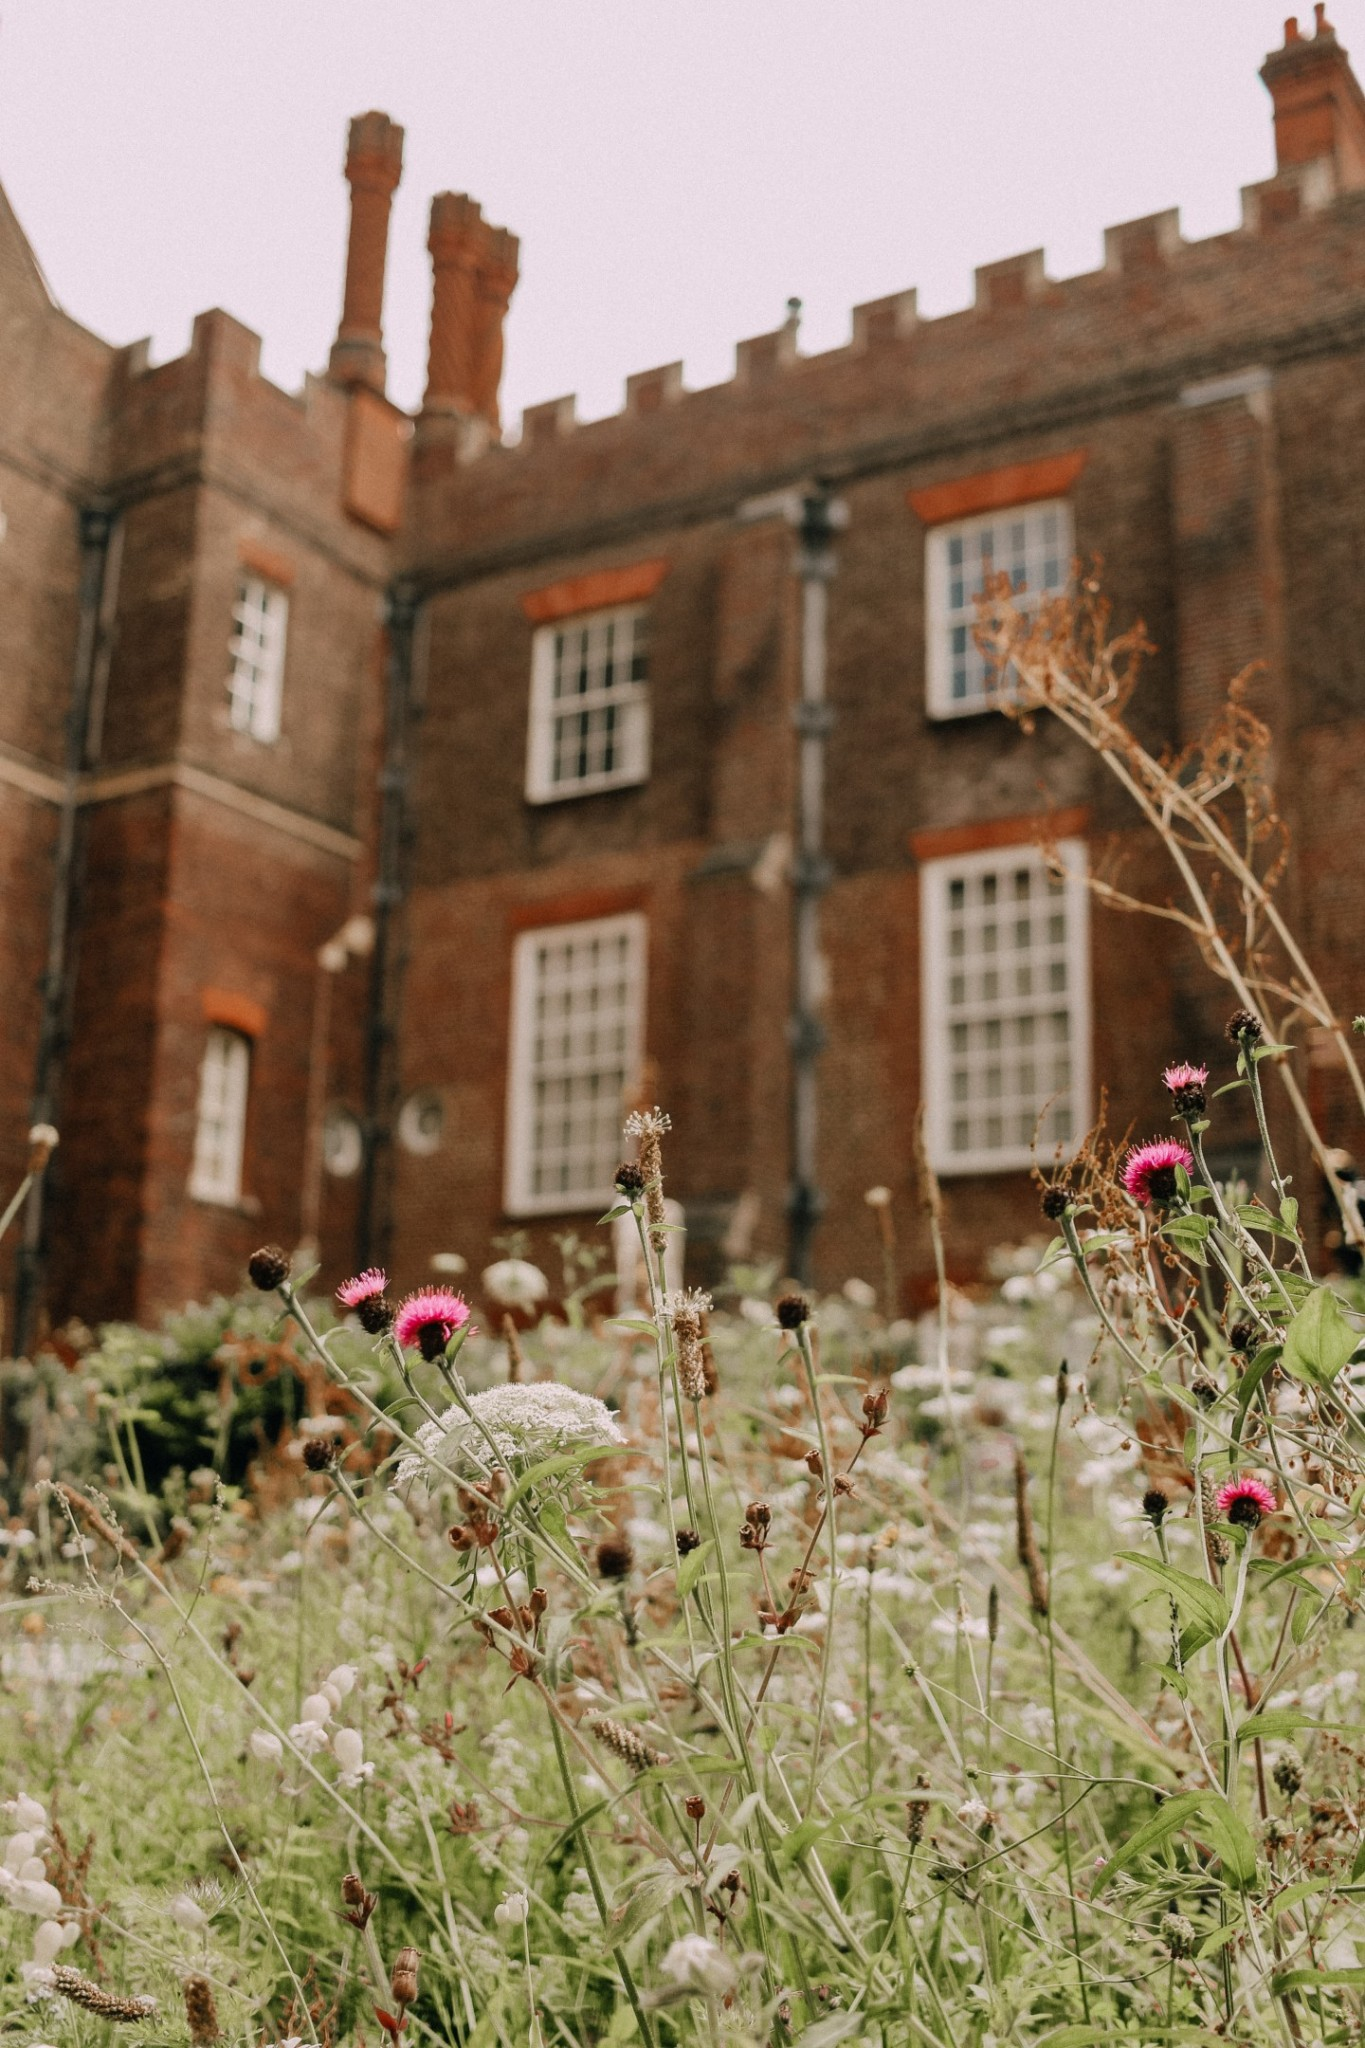 Lifestyle blogger Mollie Moore shares photos from Hampton Court Palace in London